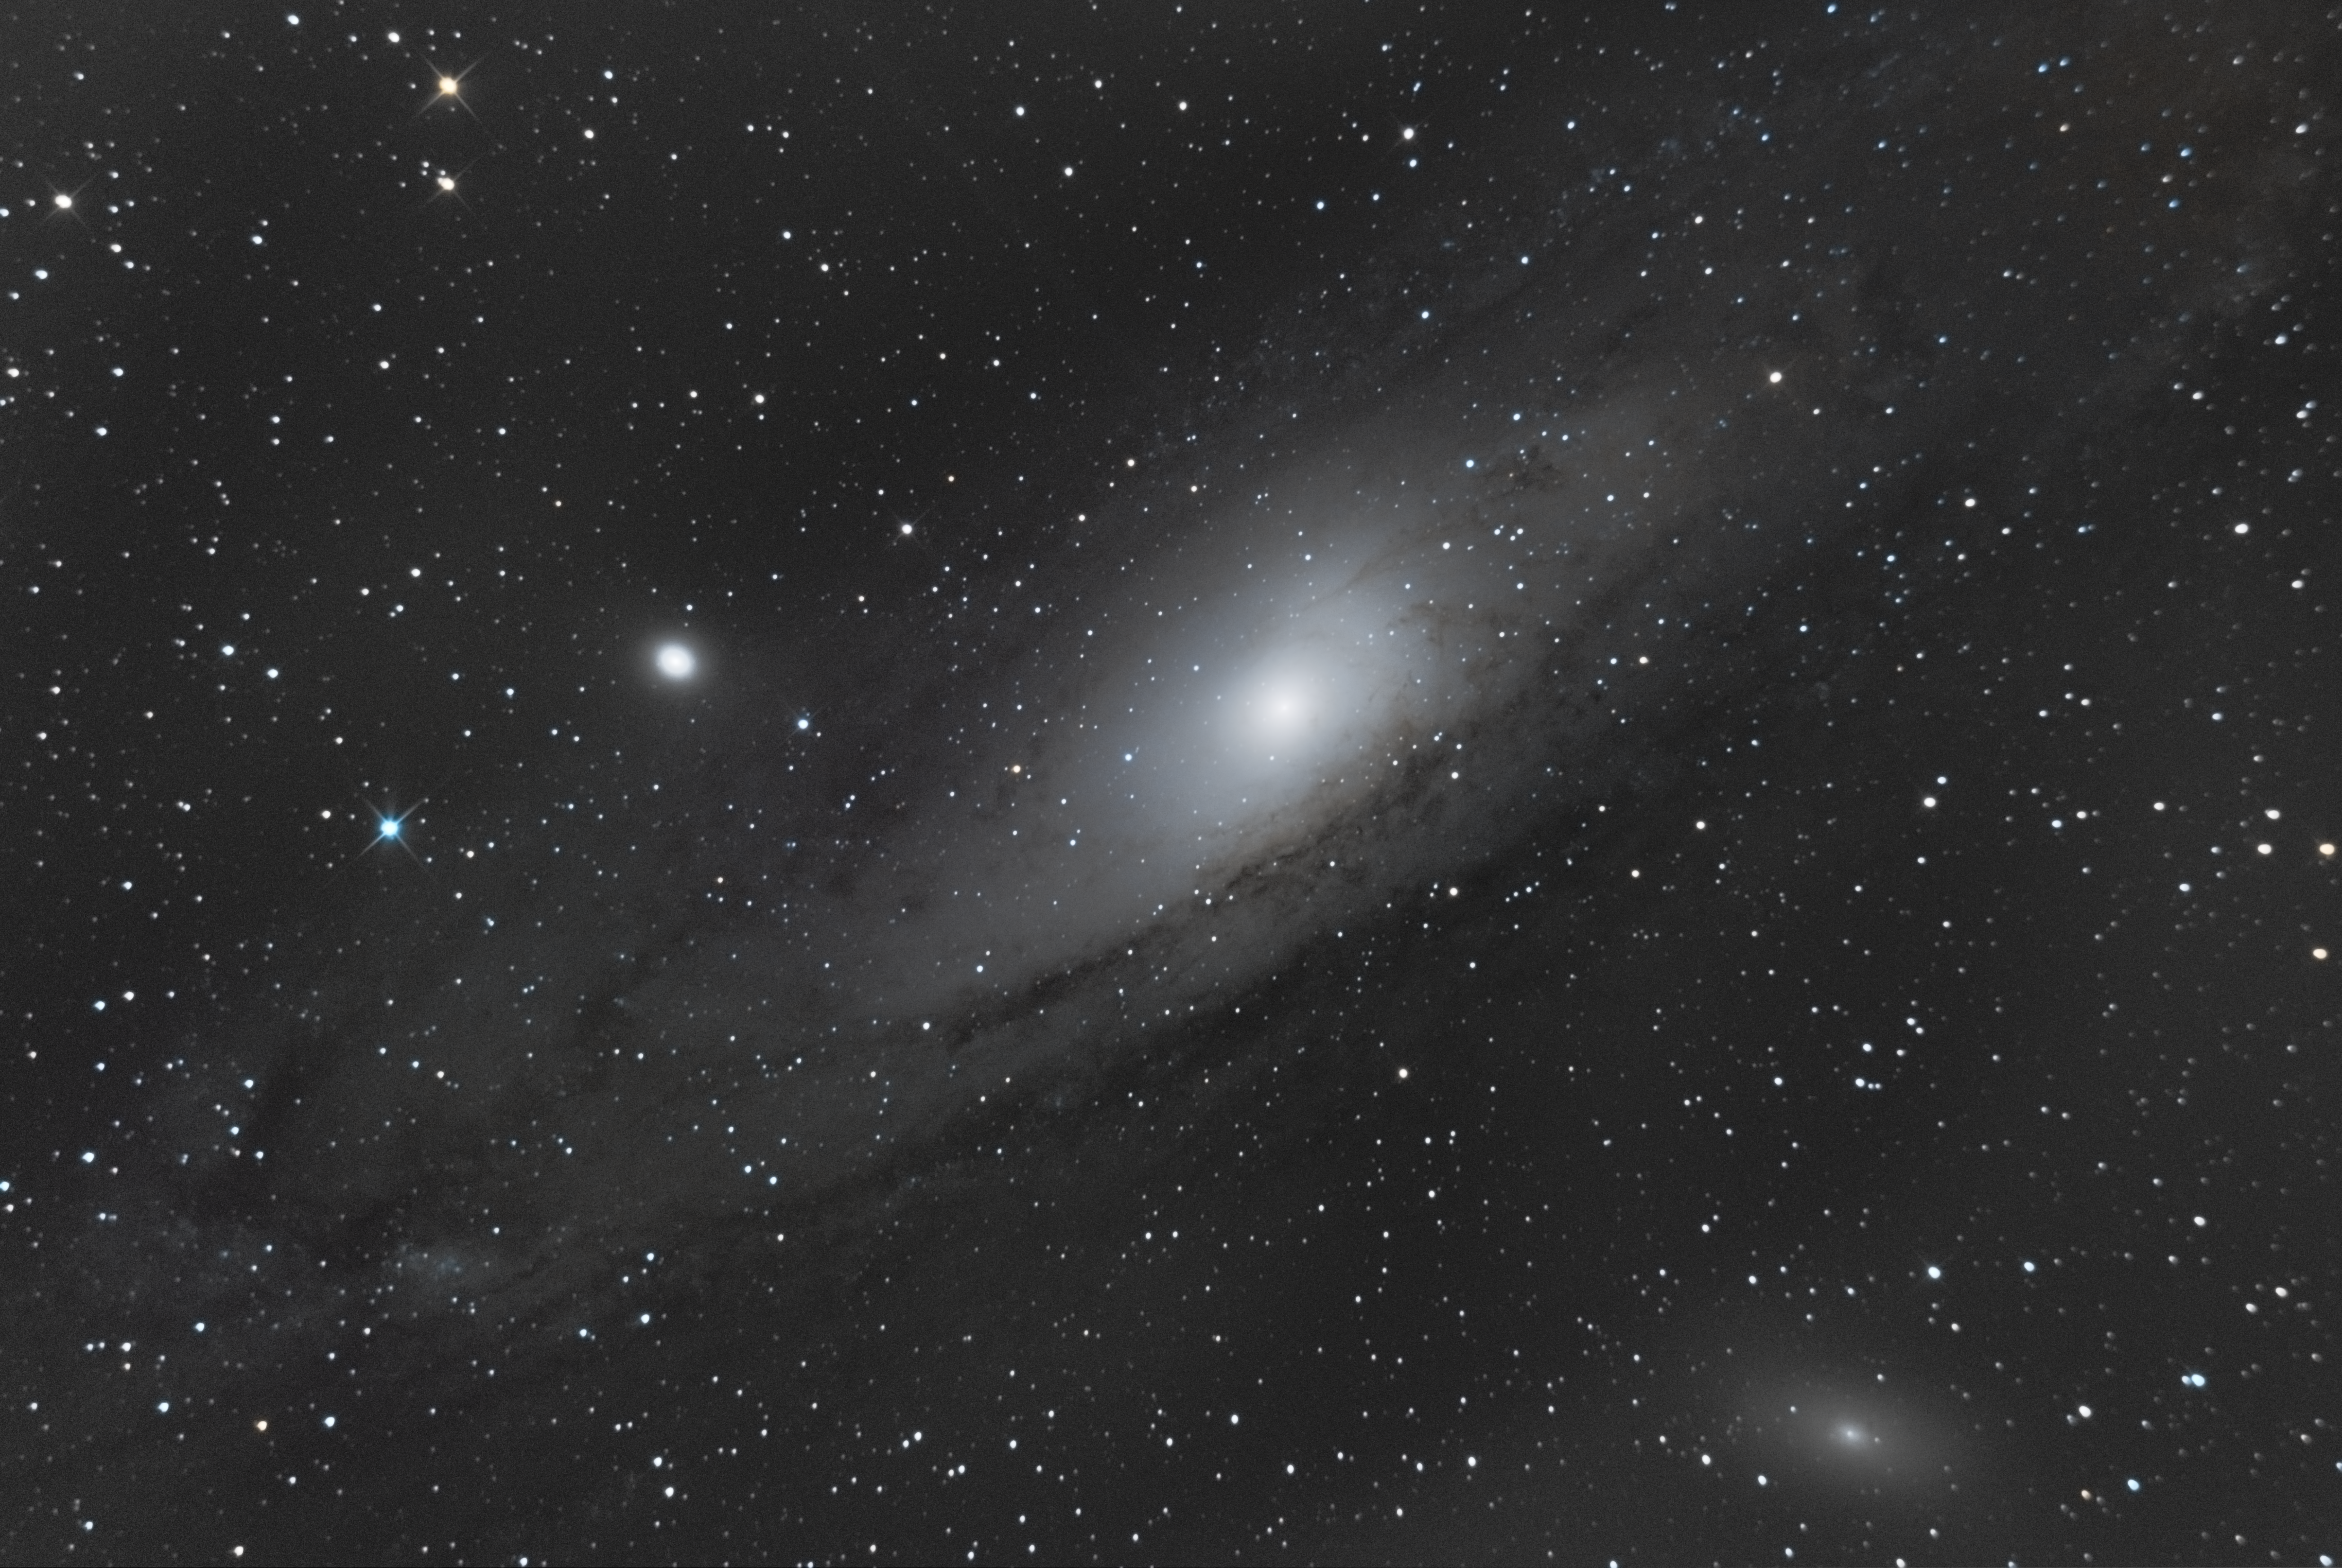 M31_03_01_2019_V2.png.a785ef33978a5584bf